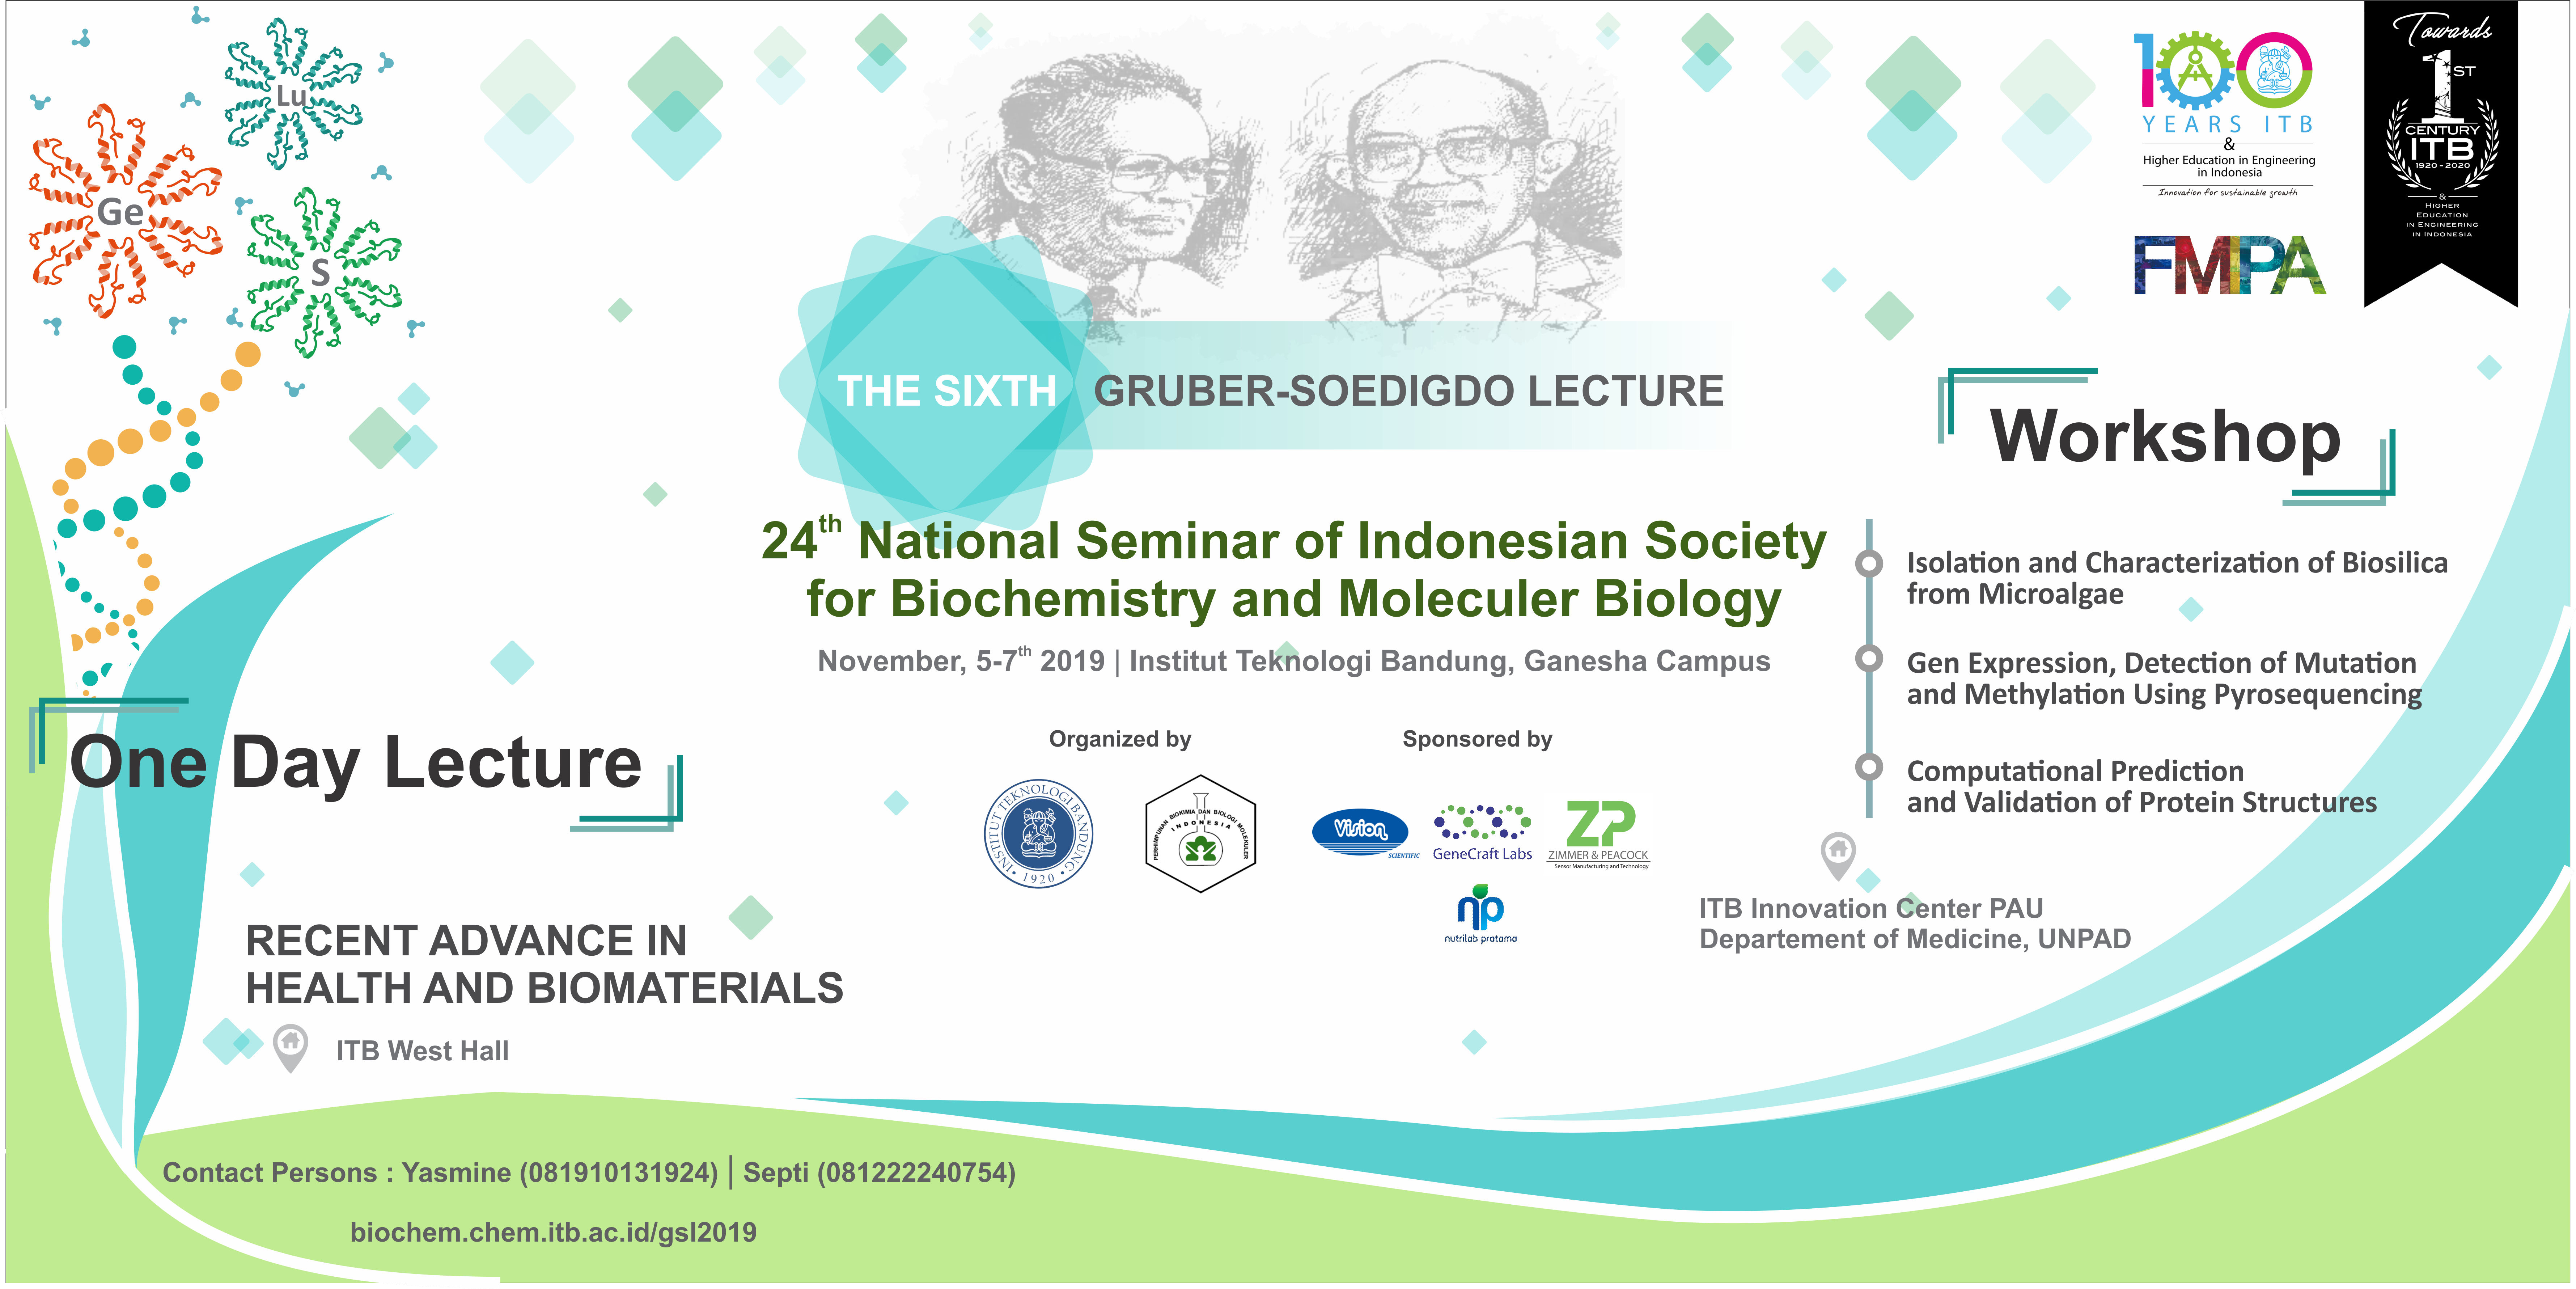 PRESS RELEASE: The 6th Gruber Soedigdo Lecture – GSL2019